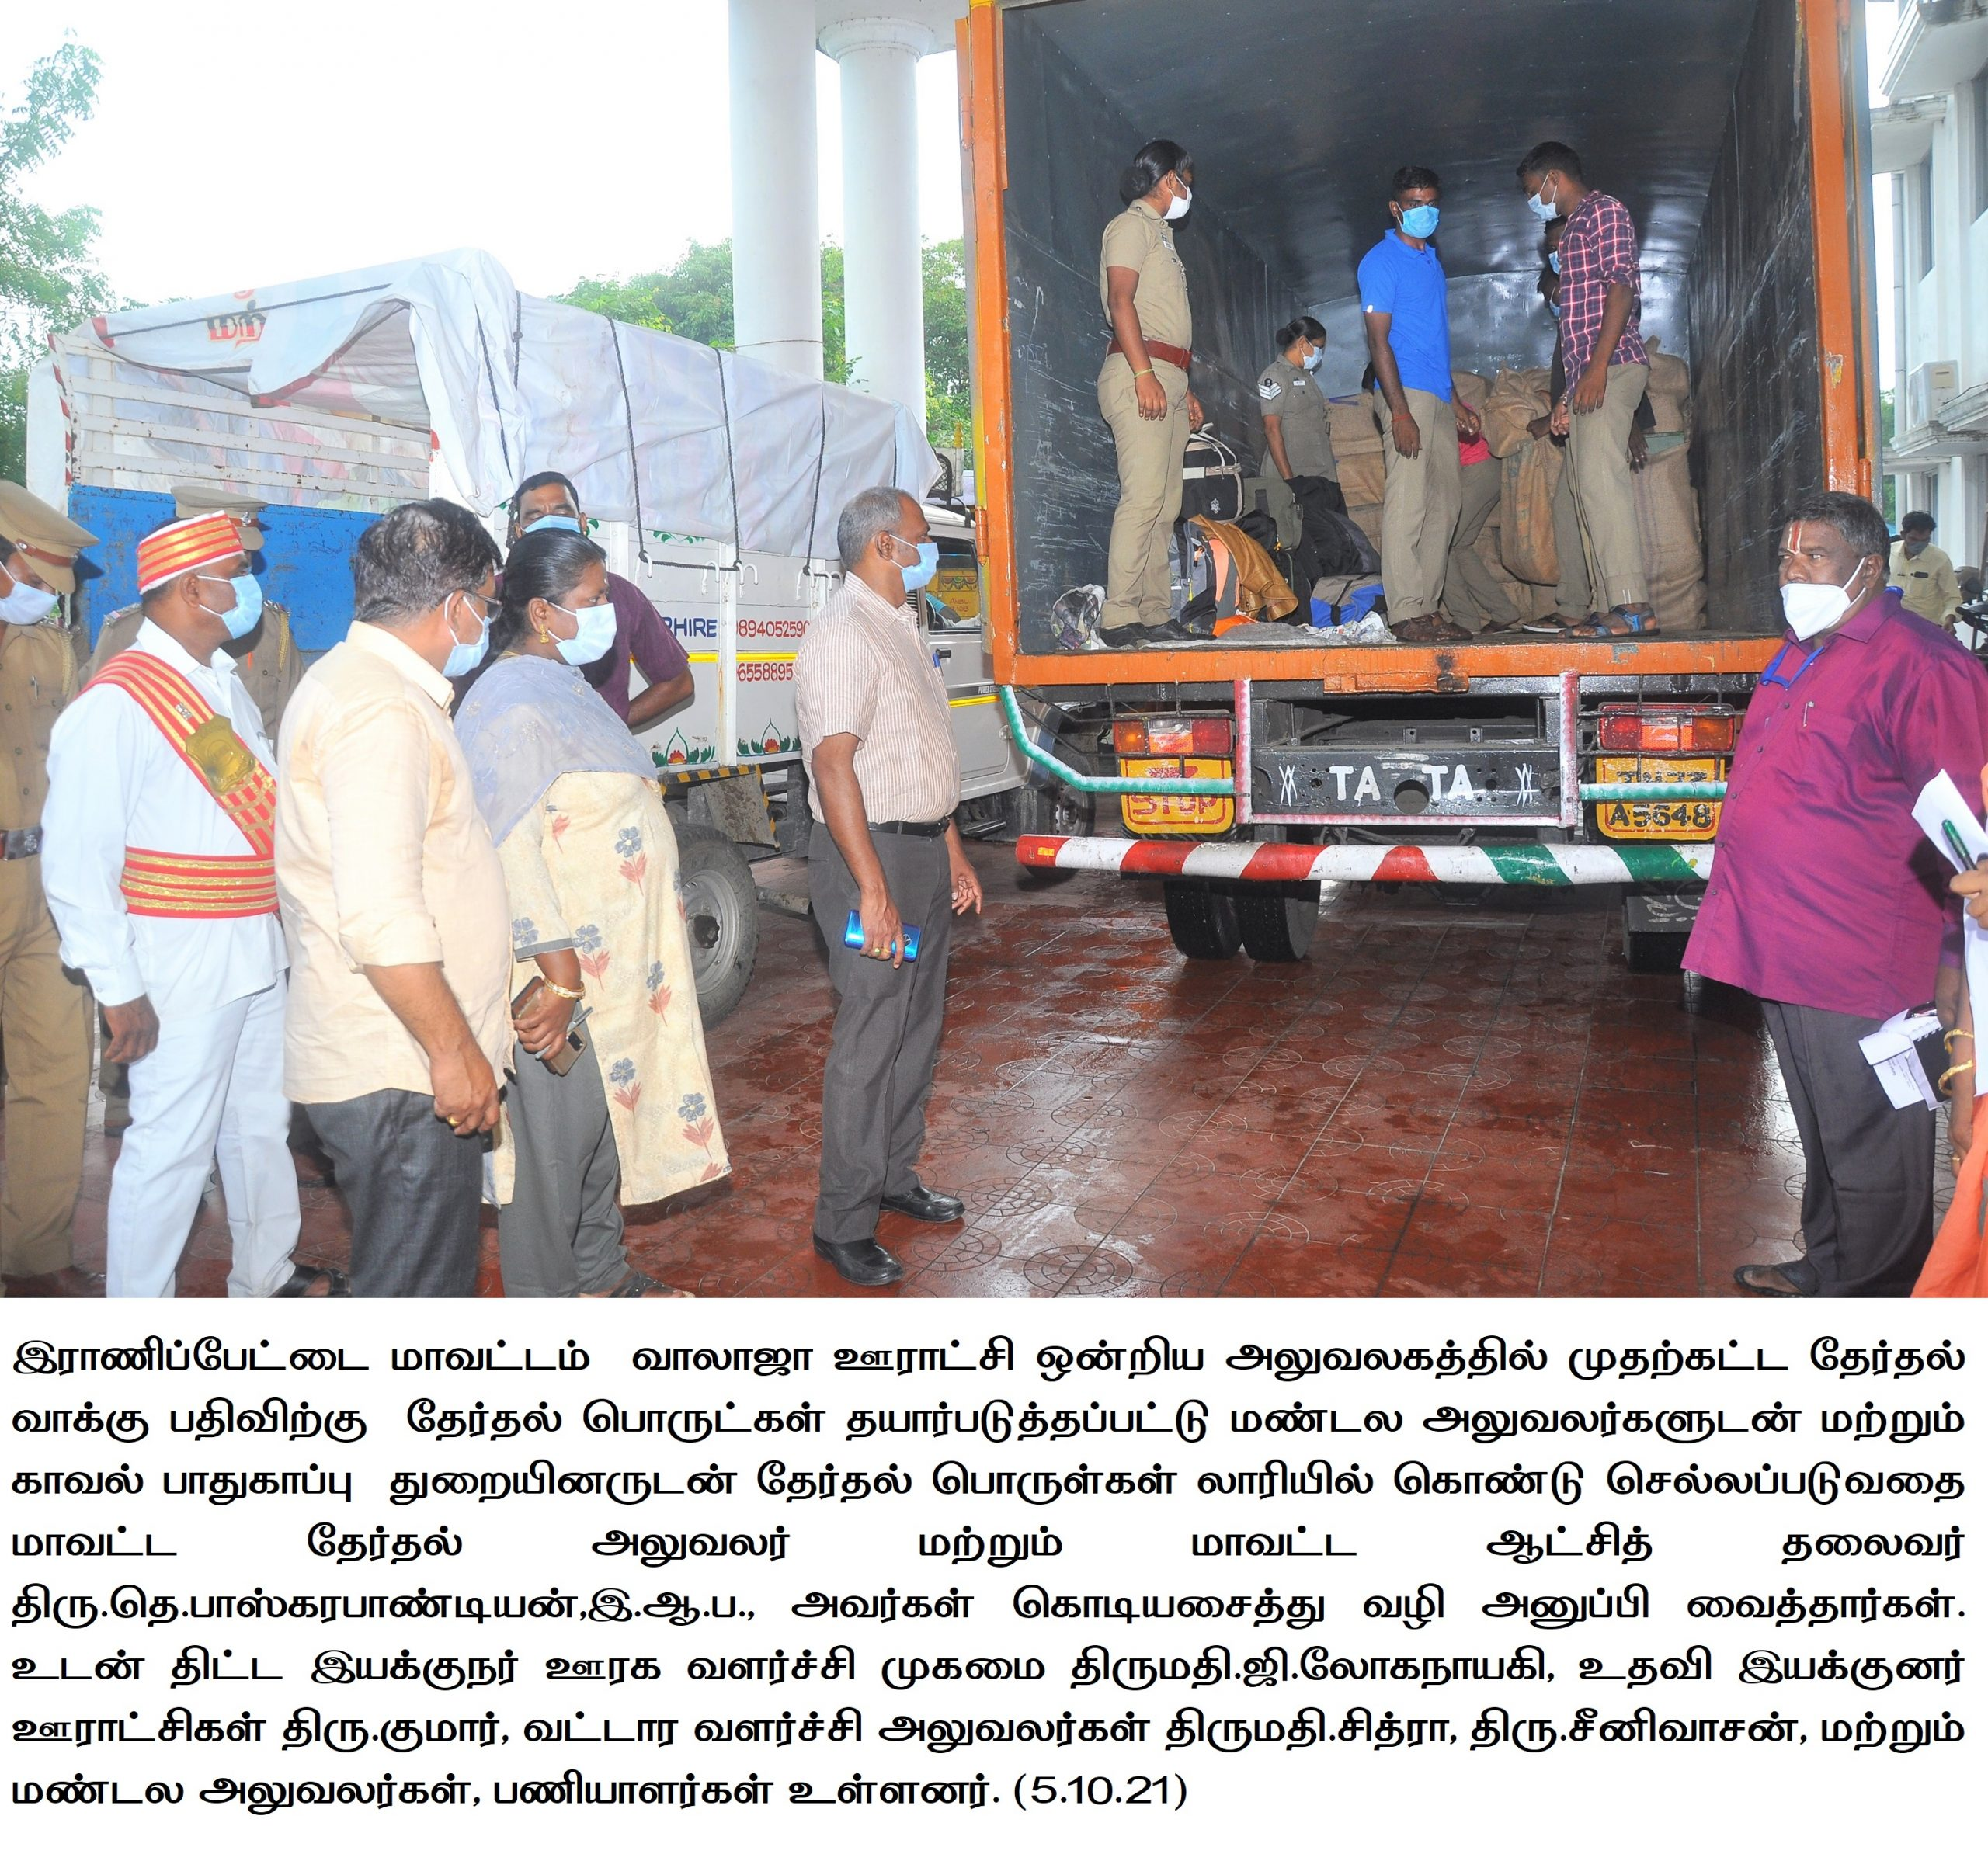 District Collector/District Election Officer visited and inspected local body elections materials 05/10/2021